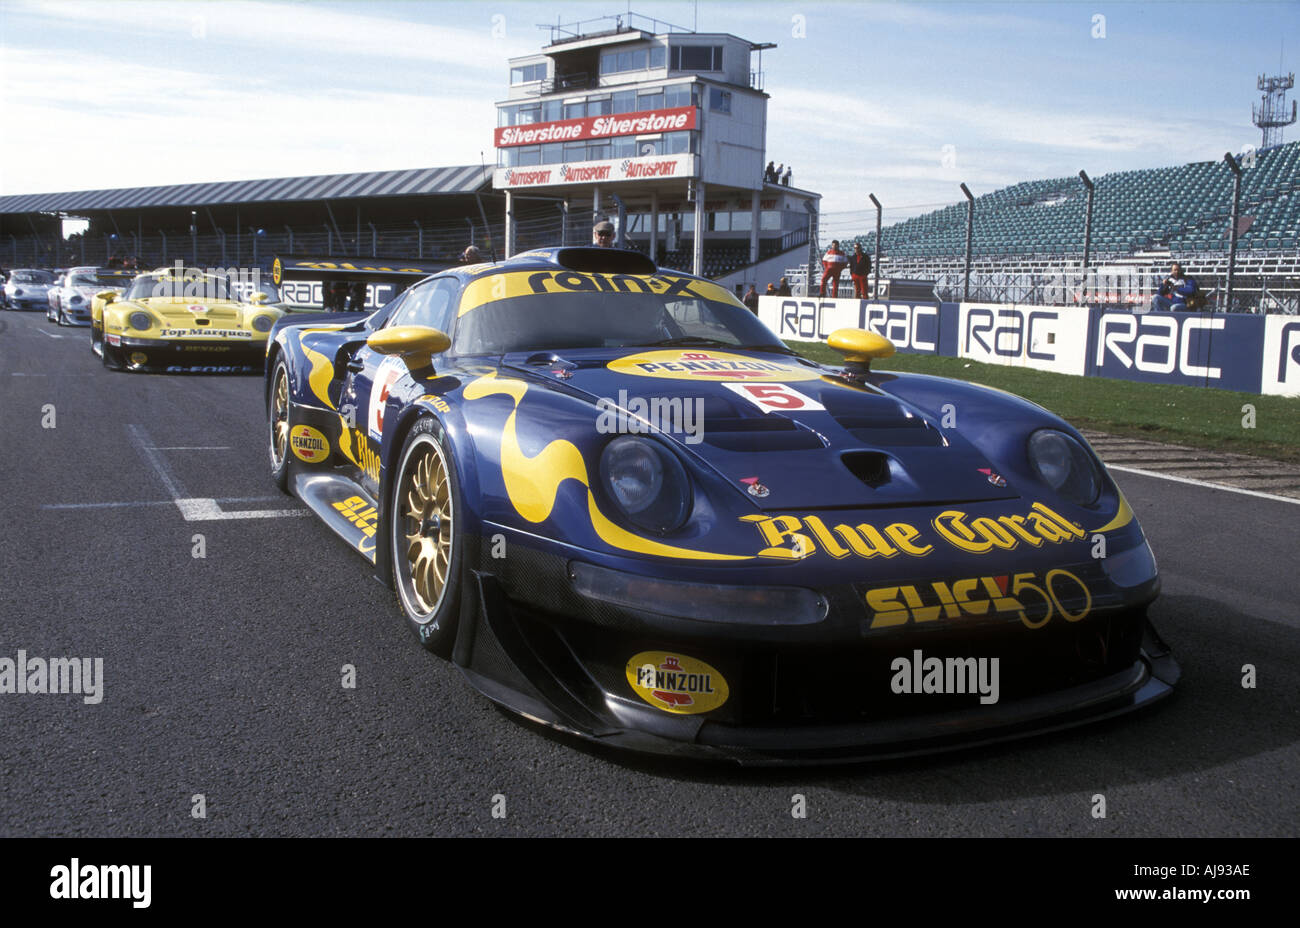 porsche 911 gt1 blue coral fia gt silverstone stock photo royalty free image 1217453 alamy. Black Bedroom Furniture Sets. Home Design Ideas